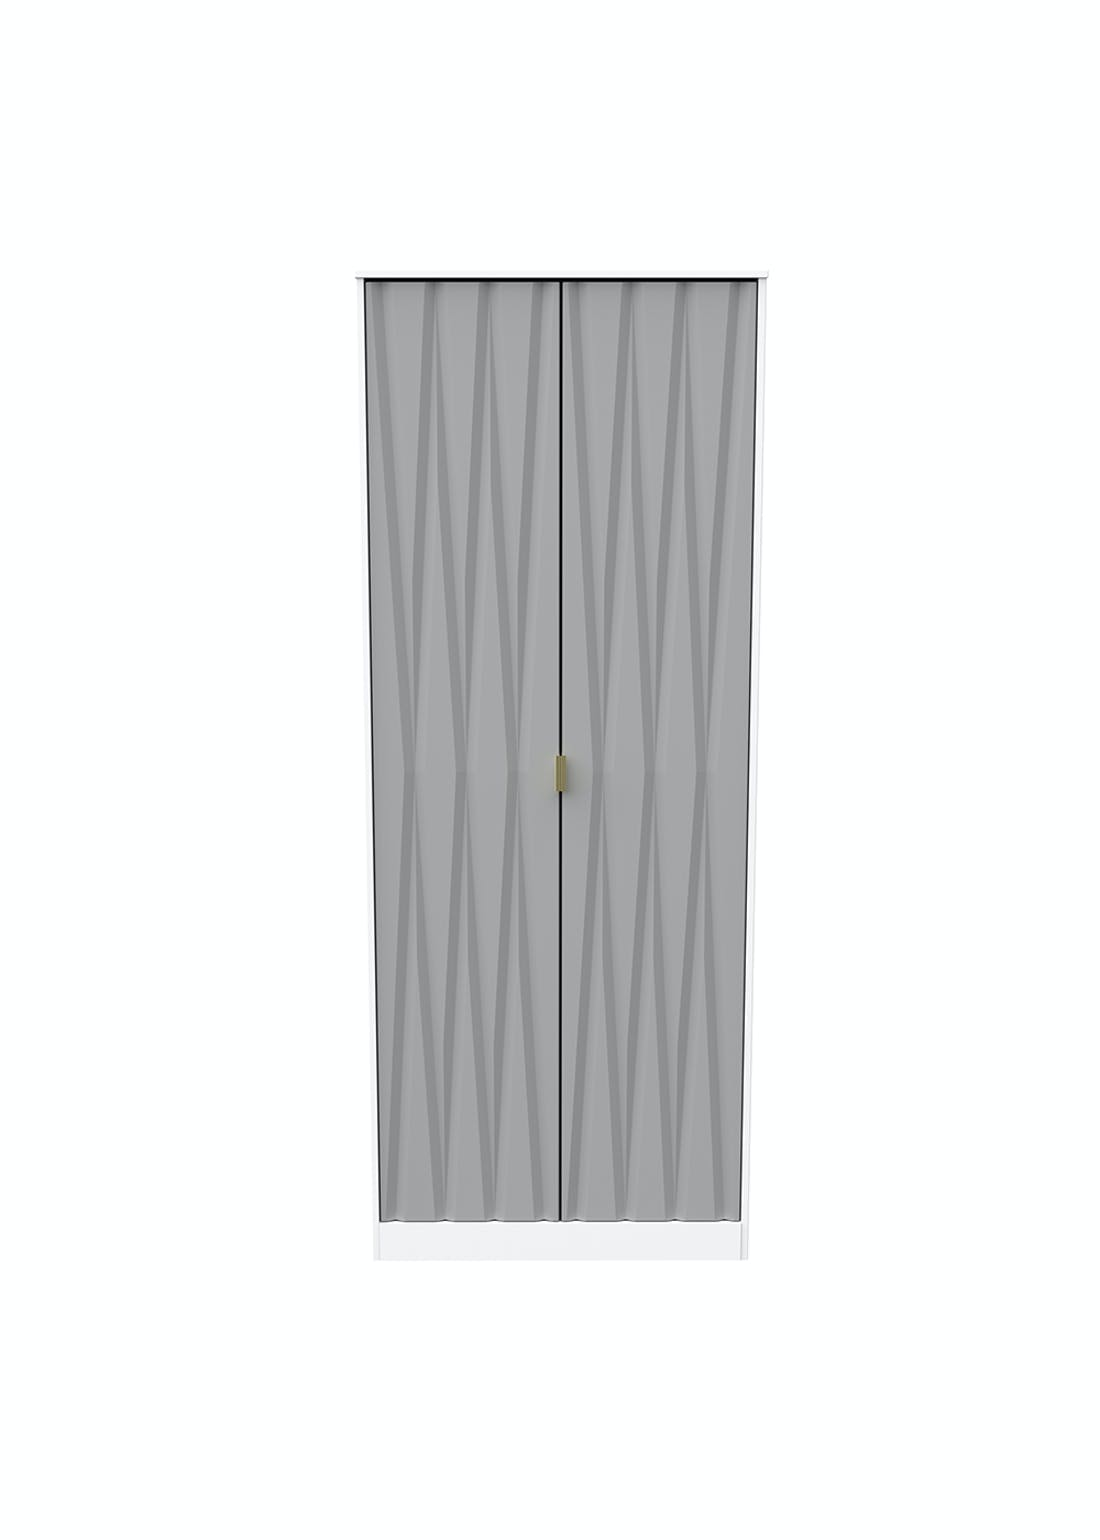 Swift Prism 2 Door Wardrobe (201.5cm x 76.5cm x 53cm)